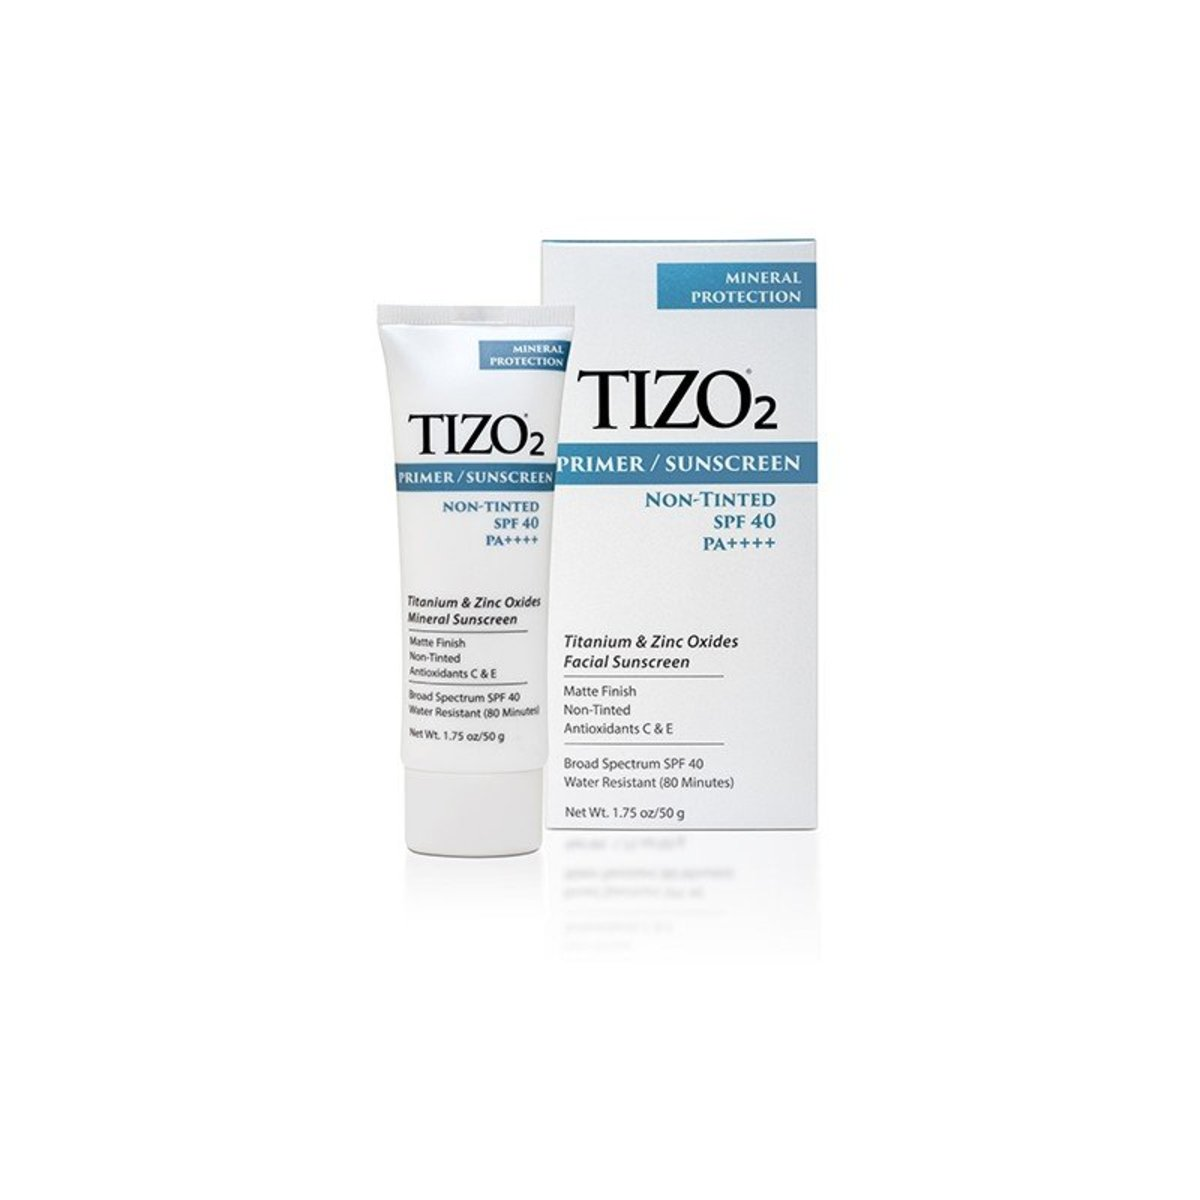 TIZO2 Sunscreen Primer 50g [Parallel Imports Product]